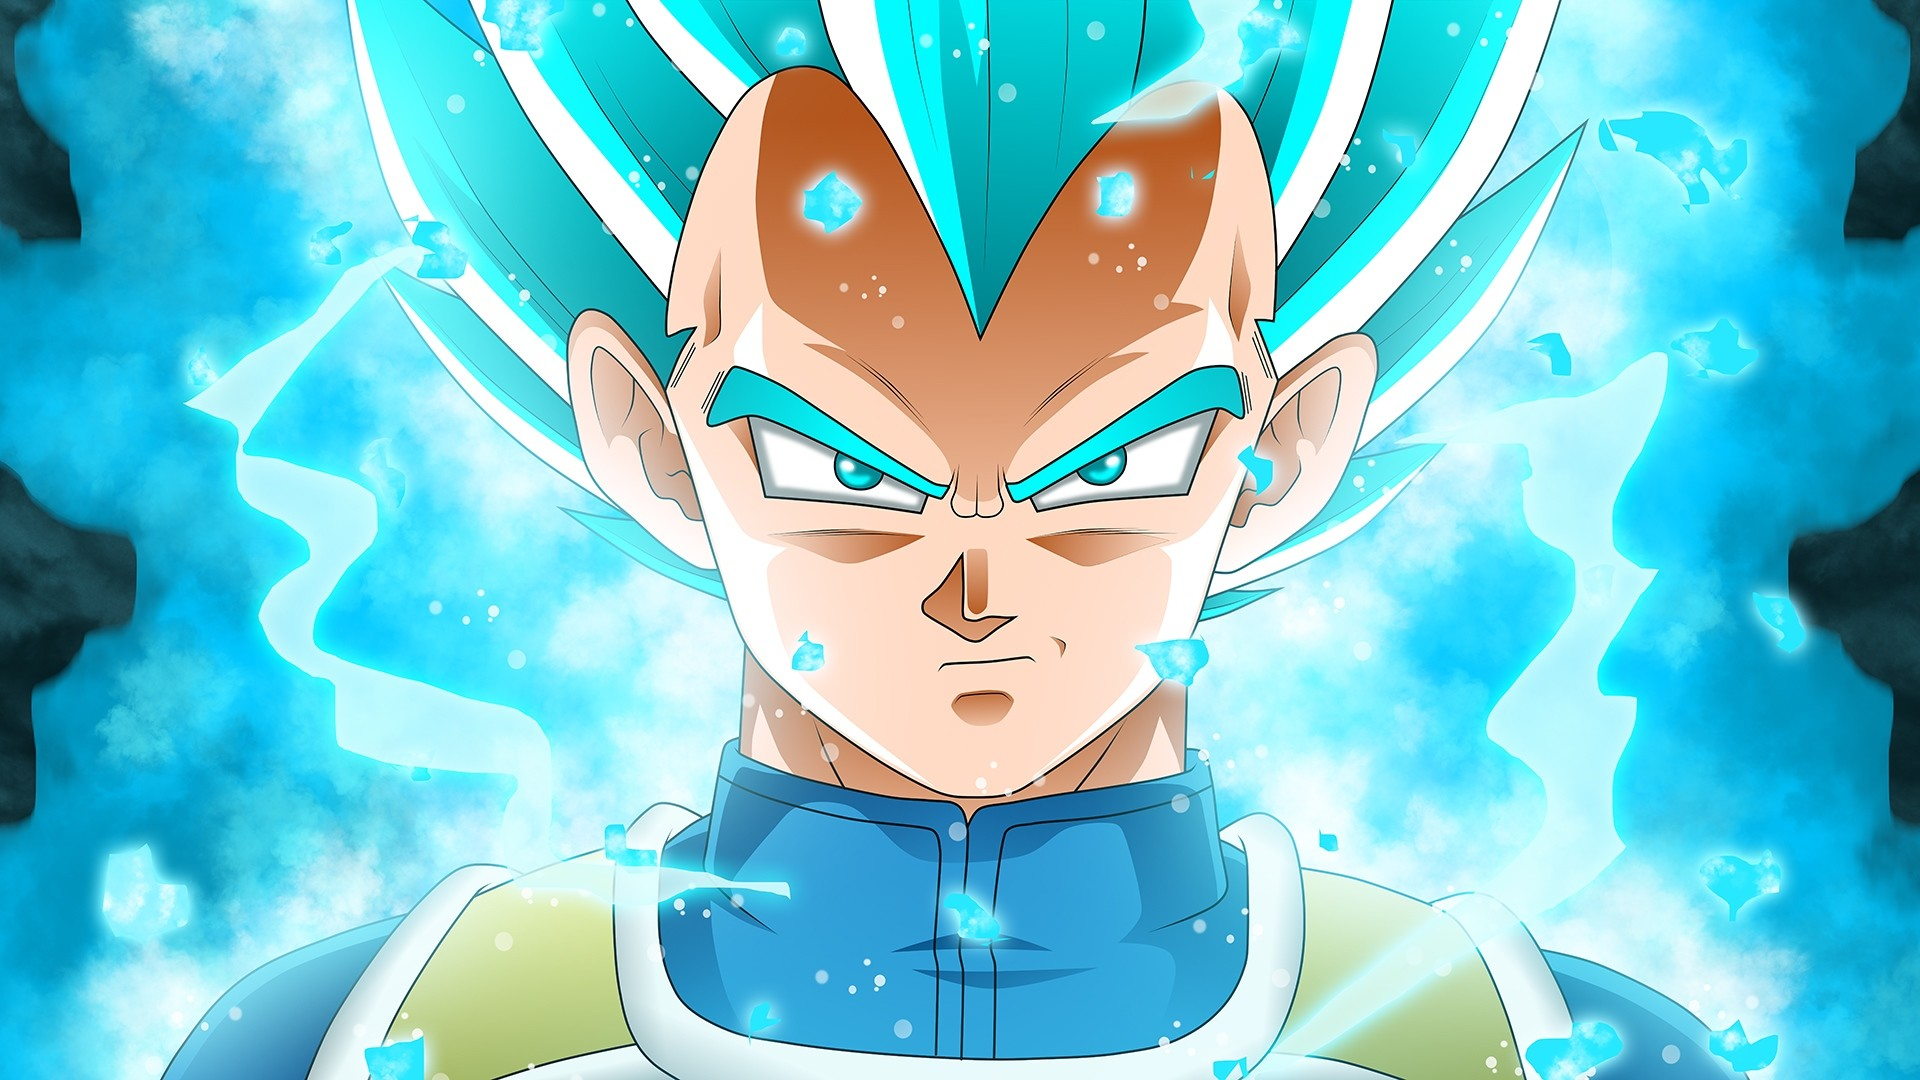 Vegeta Wallpaper 1920x1080 Healthy Living Tips